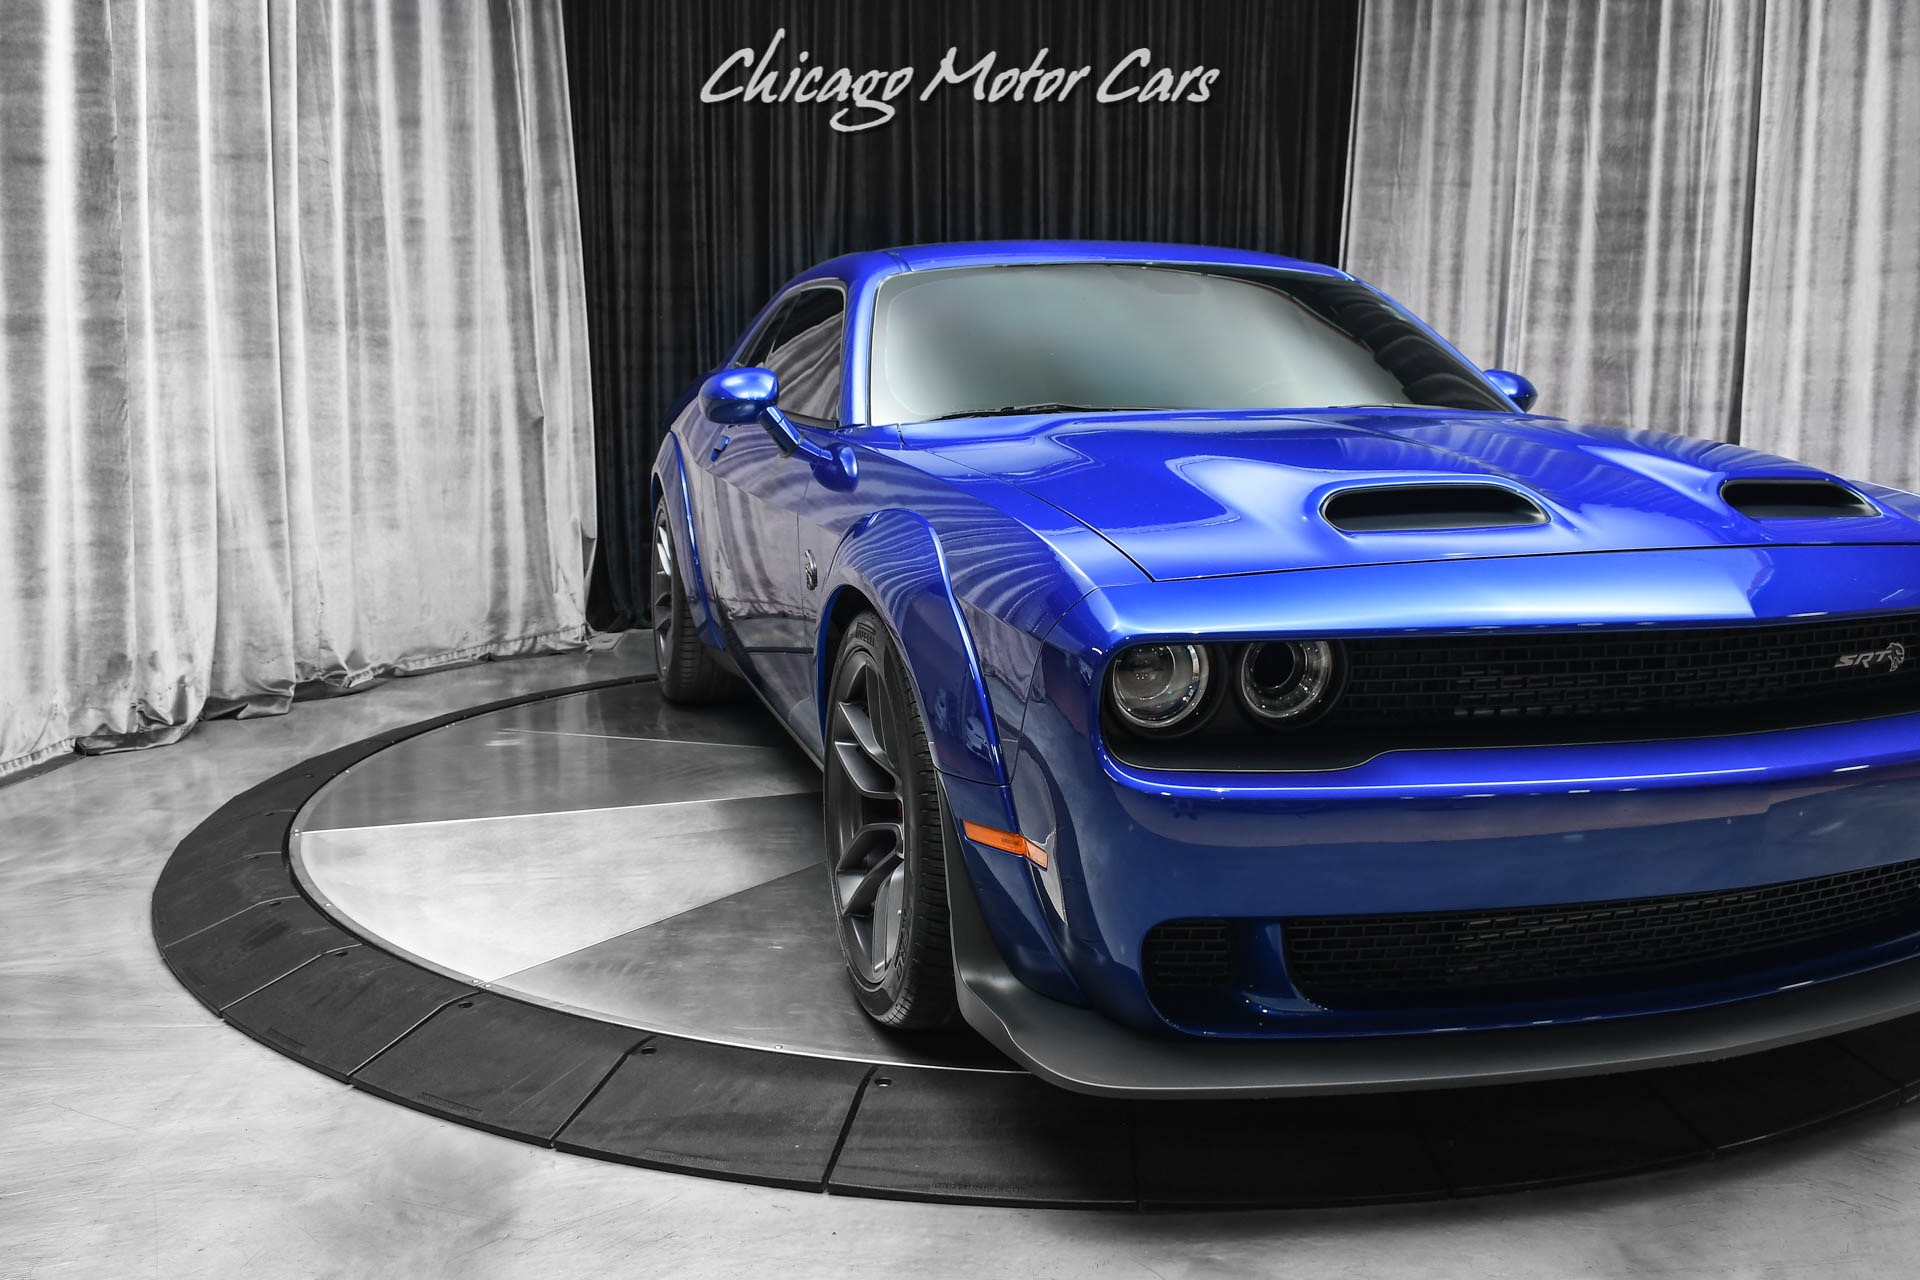 Used-2019-Dodge-Challenger-SRT-Hellcat-Redeye-Widebody-Coupe-PLUS-Package-Laguna-Leather-Only-6k-Miles